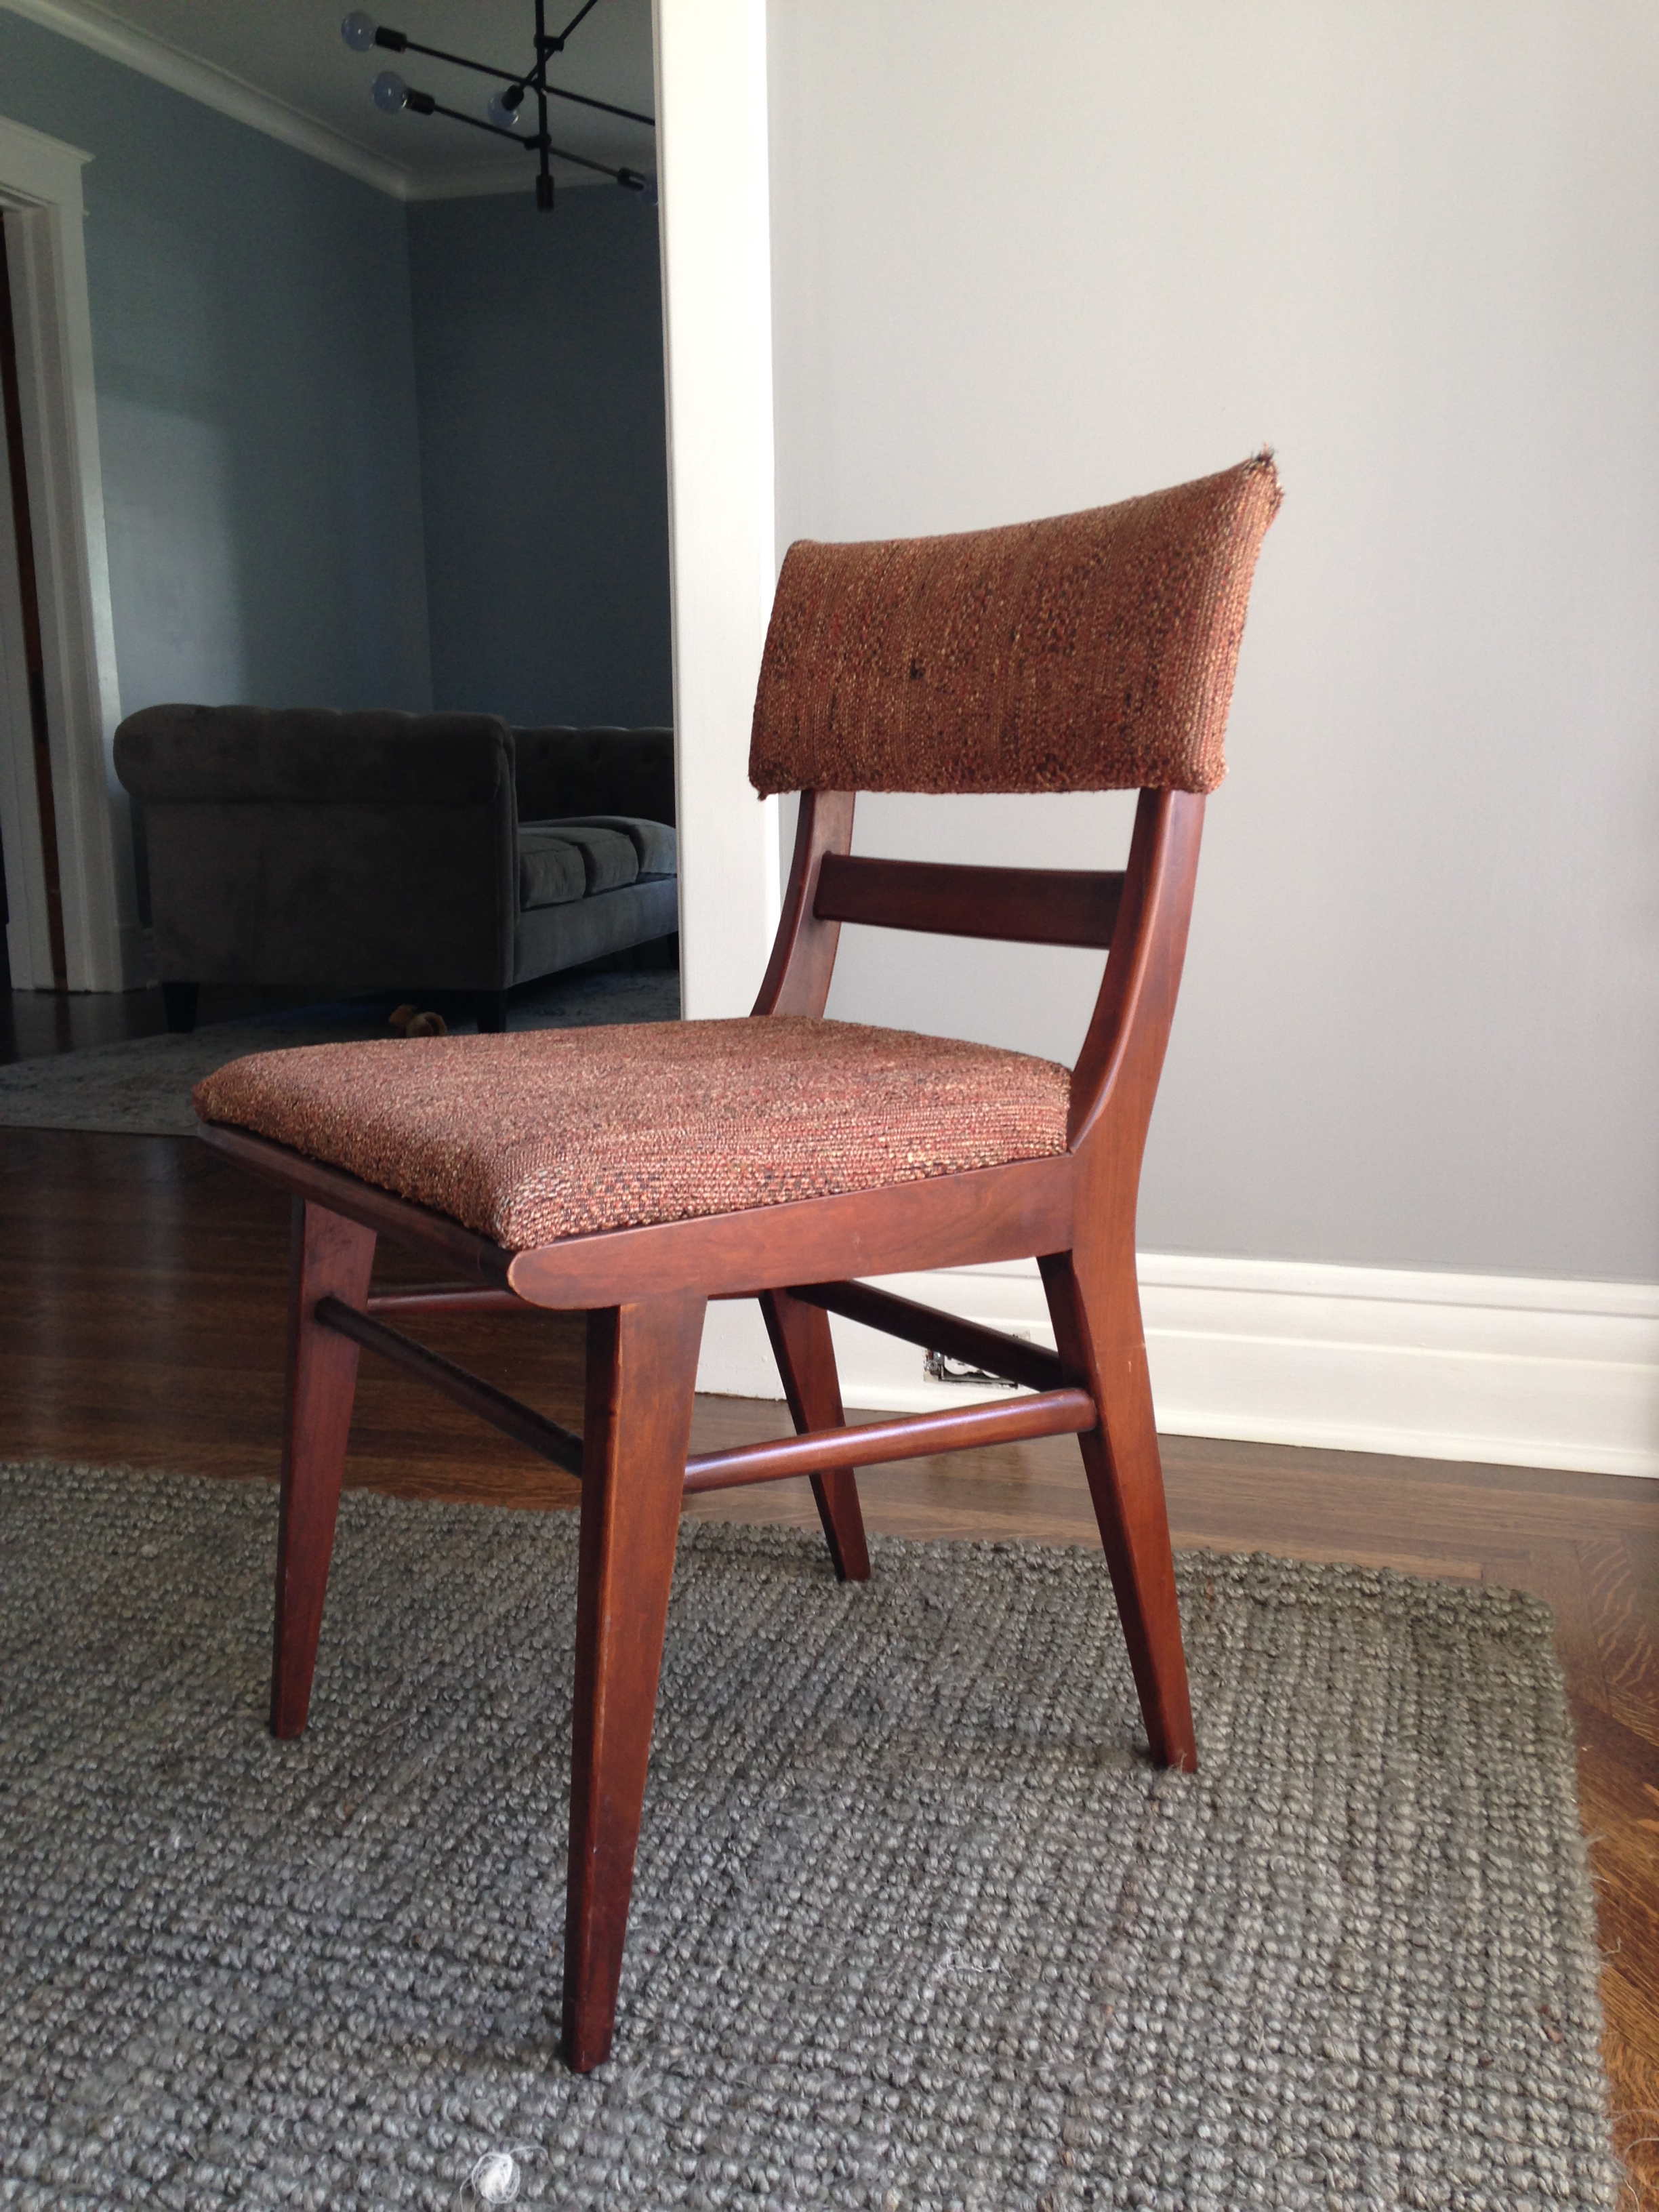 Reupholster Your Dining Room Chair Blogenium Reupholster Dining Chairs